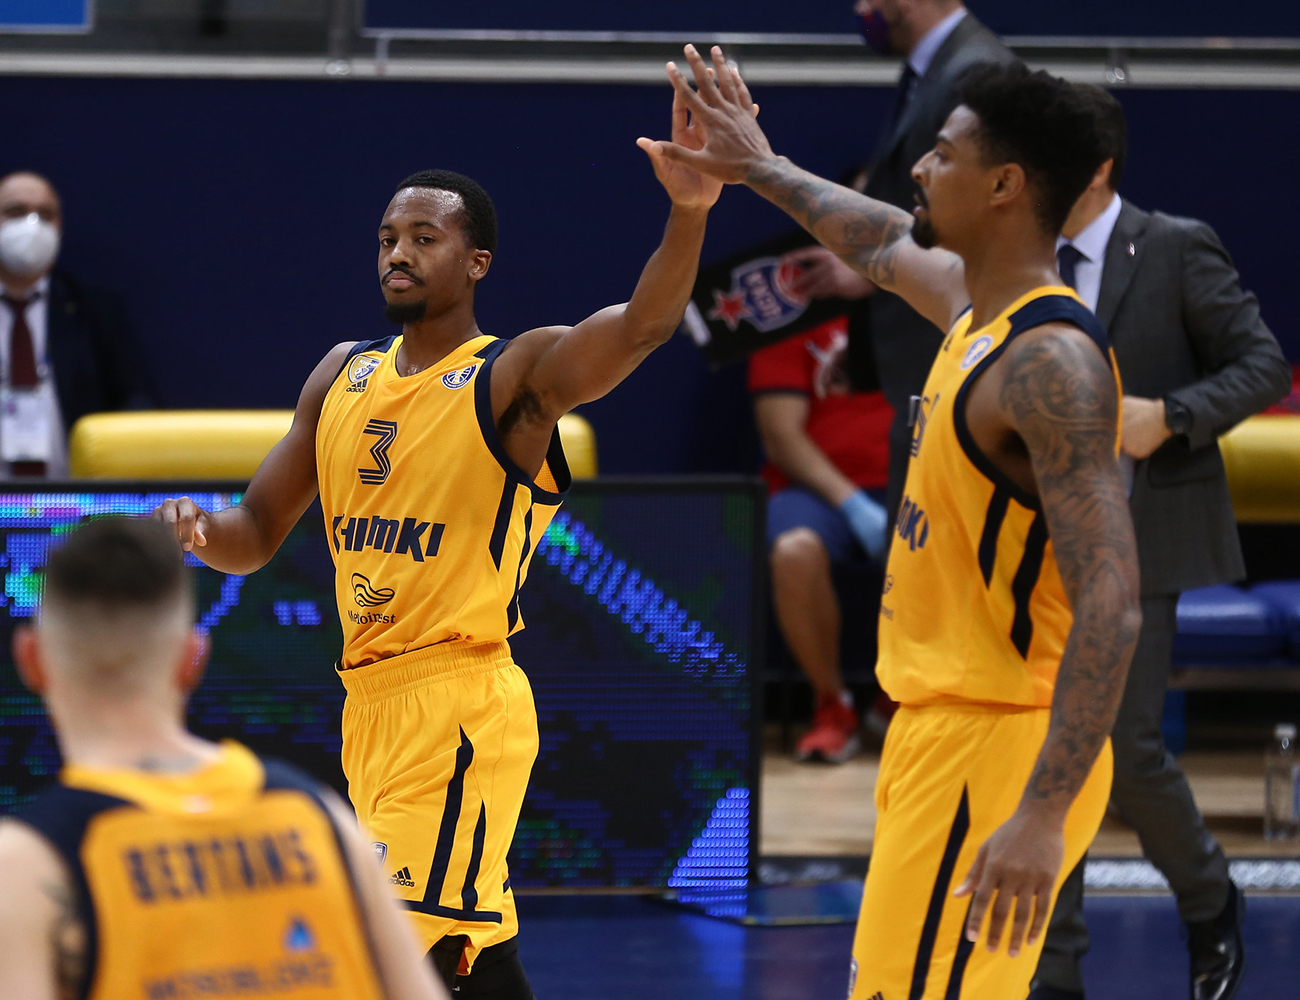 Khimki clinch play-offs